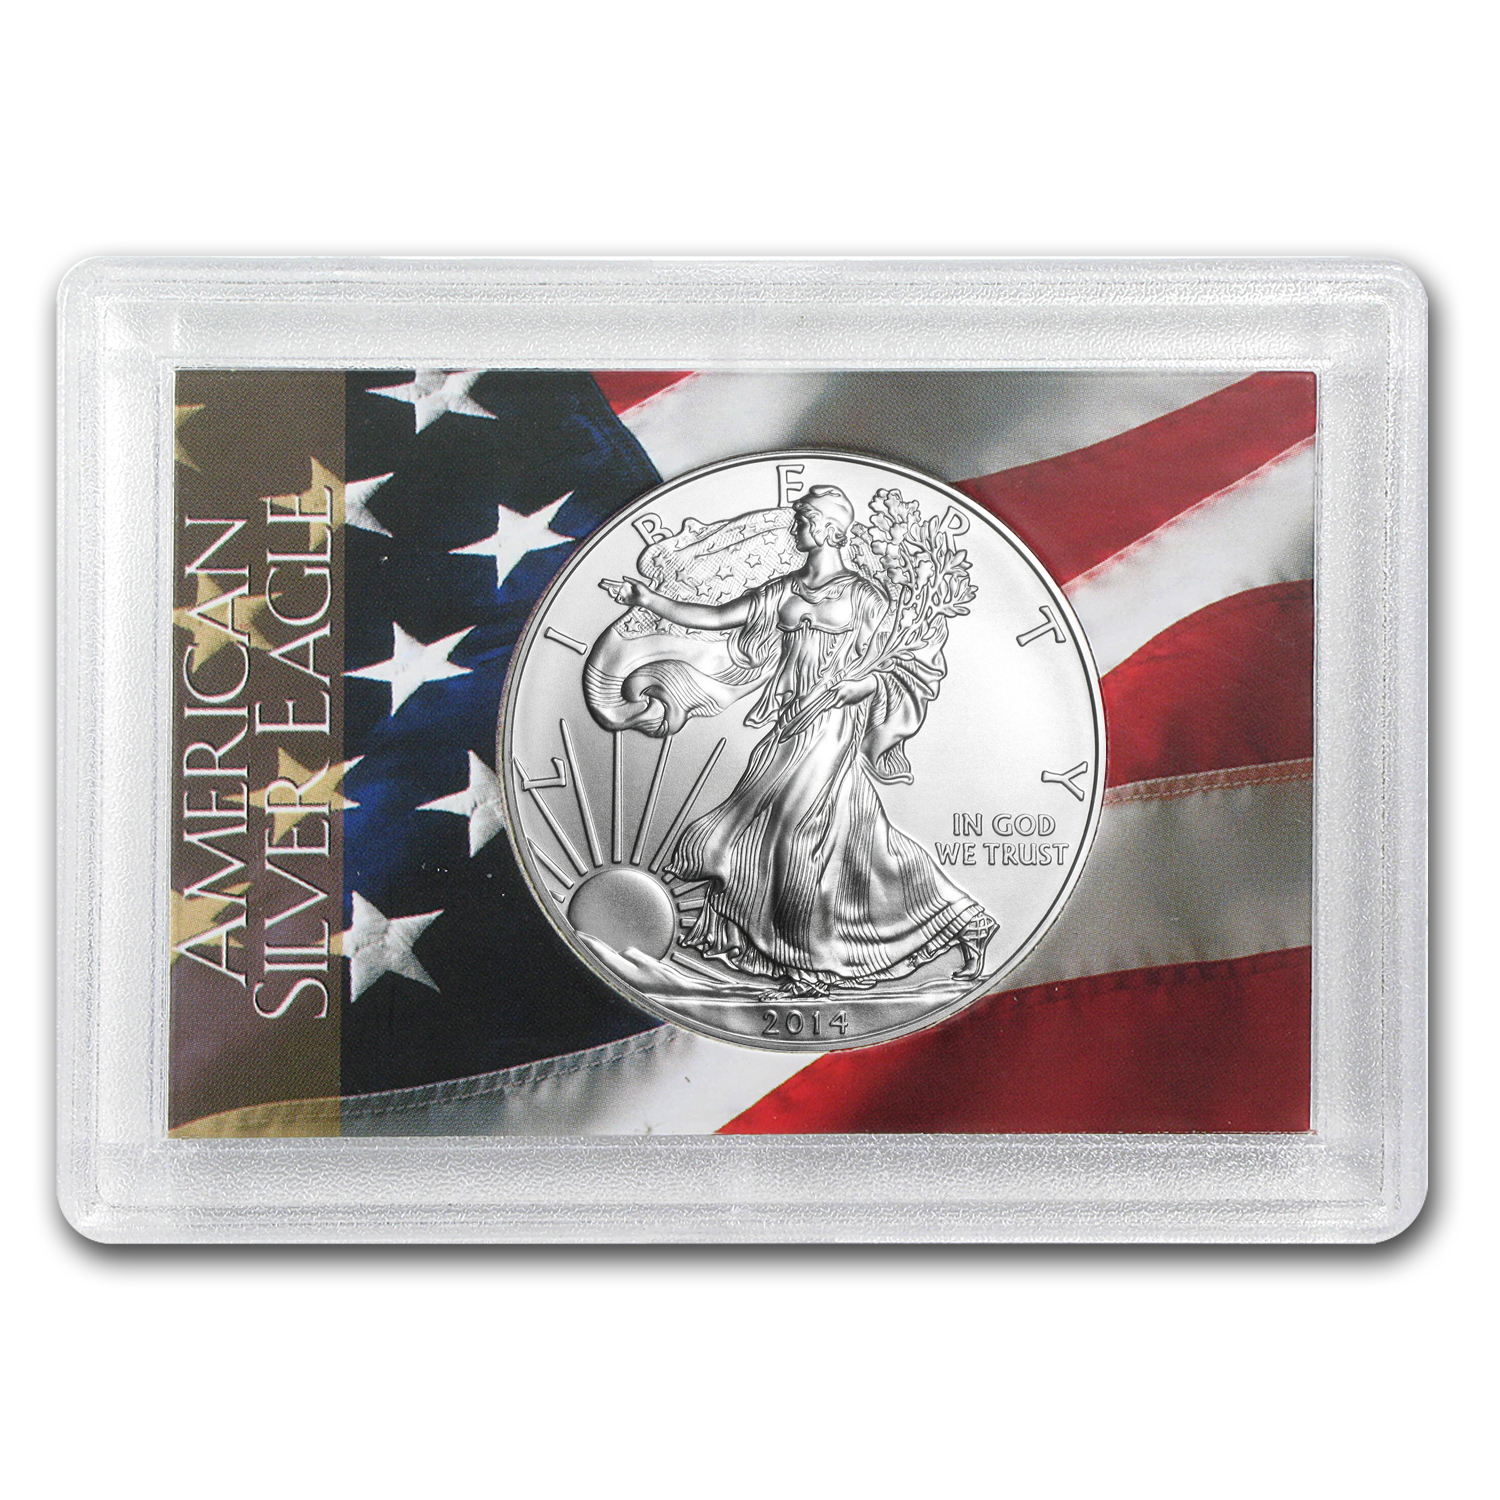 2014 1 oz Silver American Eagle (Flag Design Harris Holder)